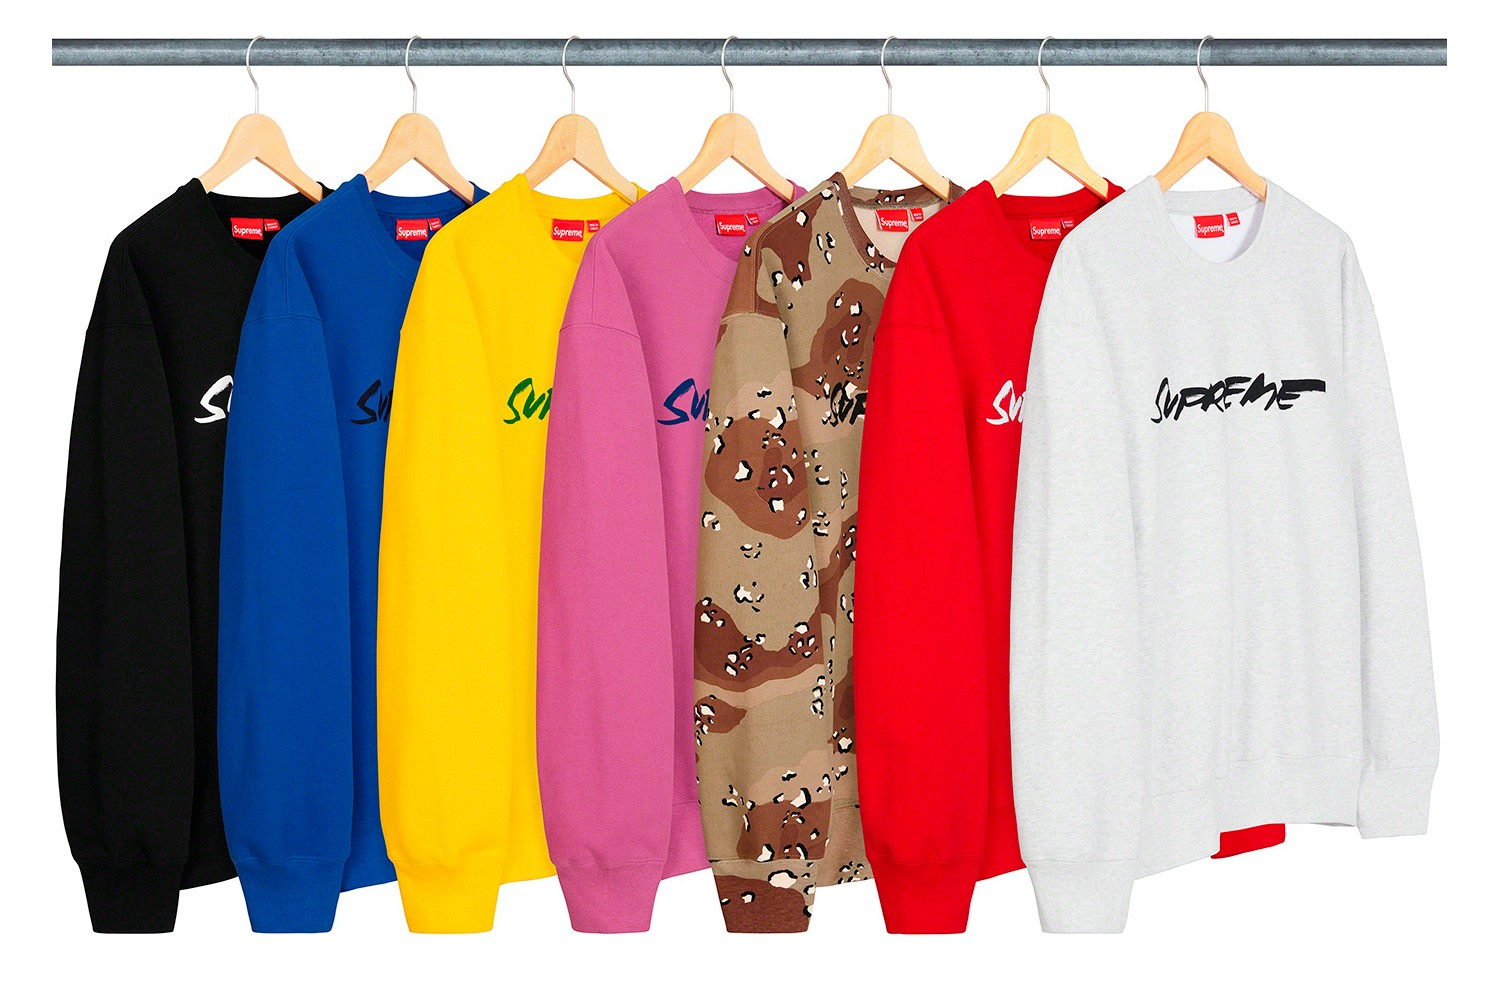 Supreme Fall/Winter 2020 Week 7 Release List RHUDE Los Angeles Lakers Nujabes Yen Town Market RIOT HILL TATRAS Fear of God ESSENTIALS Patta Levi's Palace Skateboards Rapha Giro d'Italia Fox Racing Tees